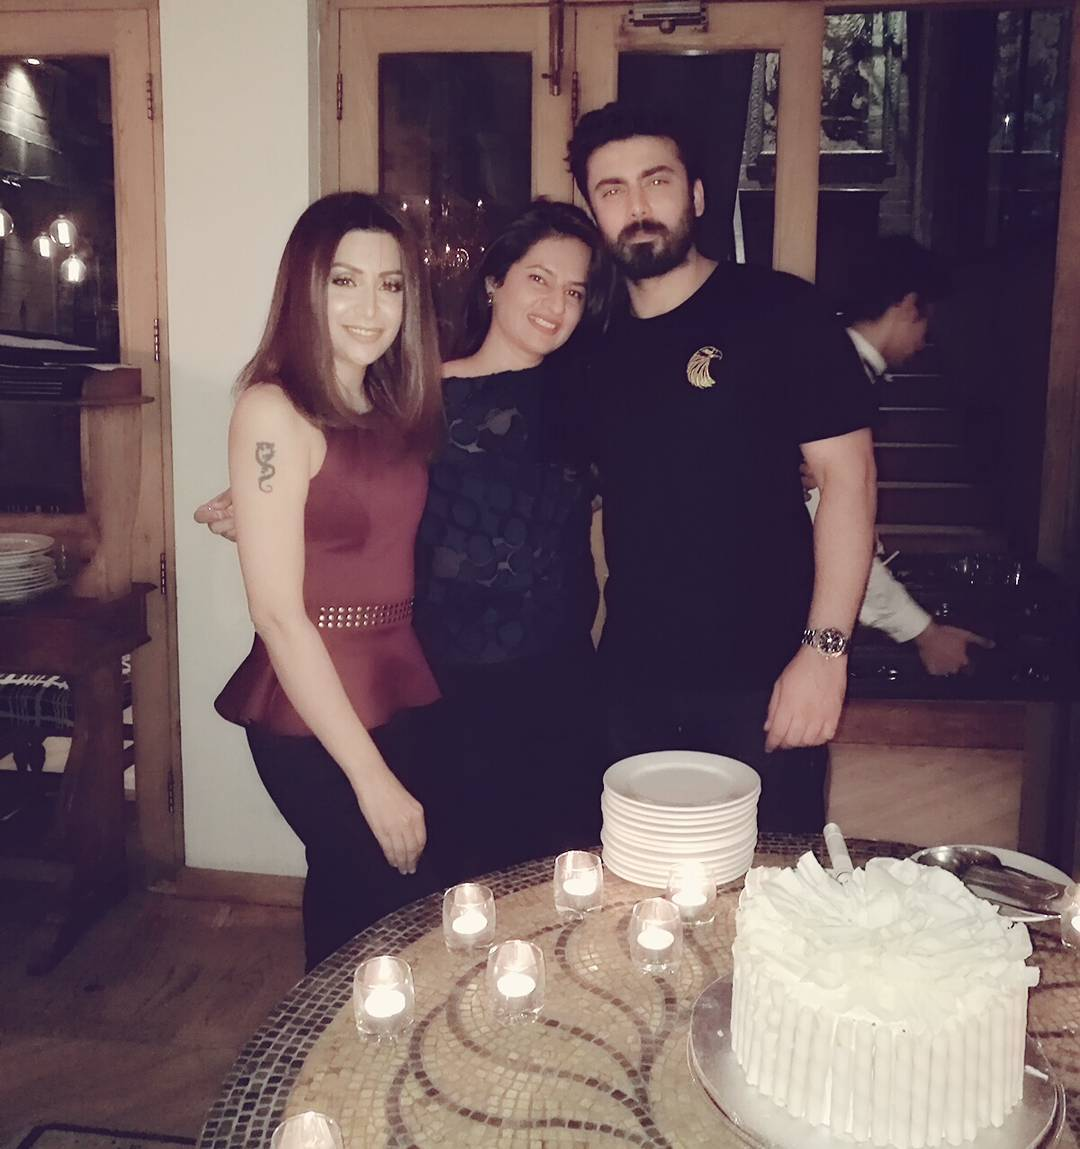 fawad khan birthday party for sadaf khan